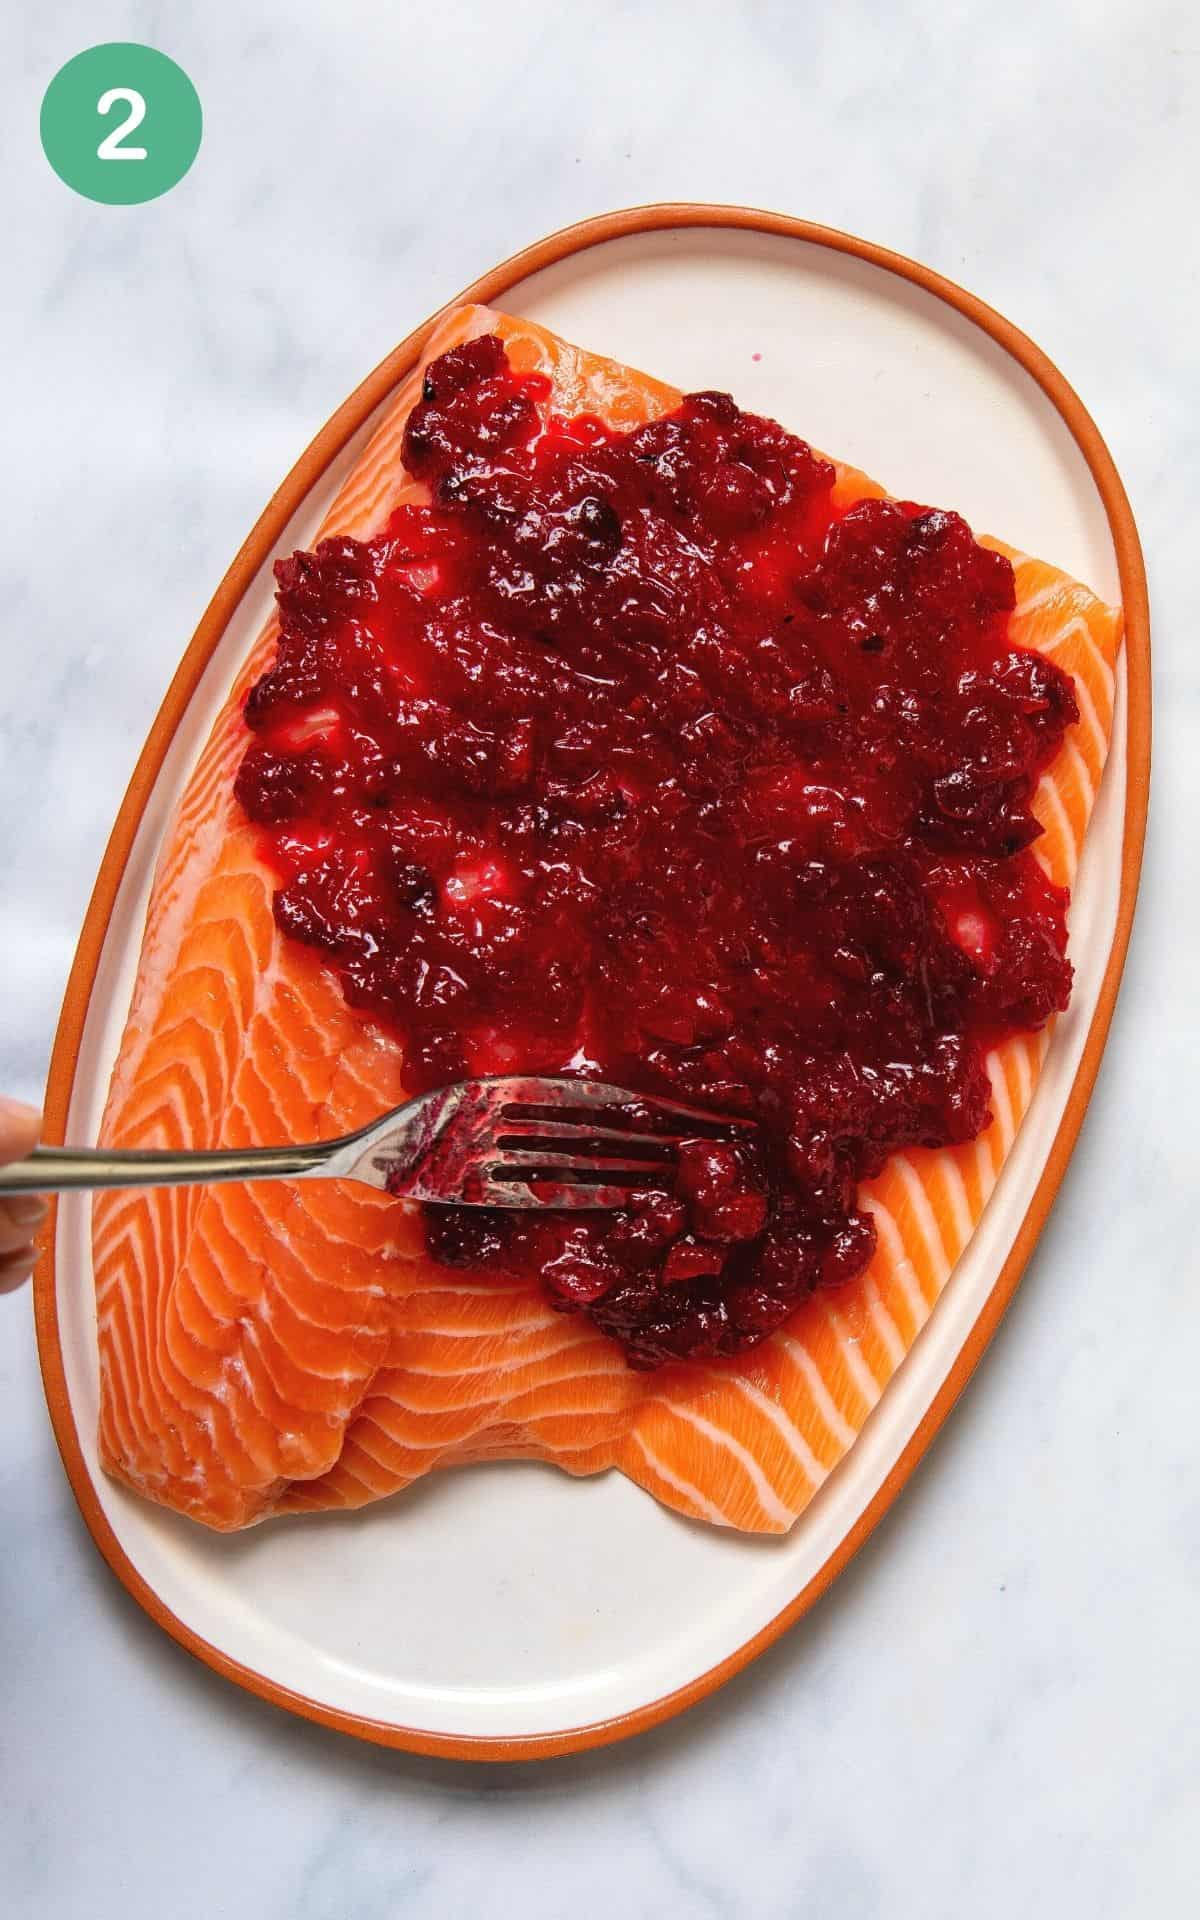 Spreading cranberry sauce with a fork onto a salmon fillet before baking.